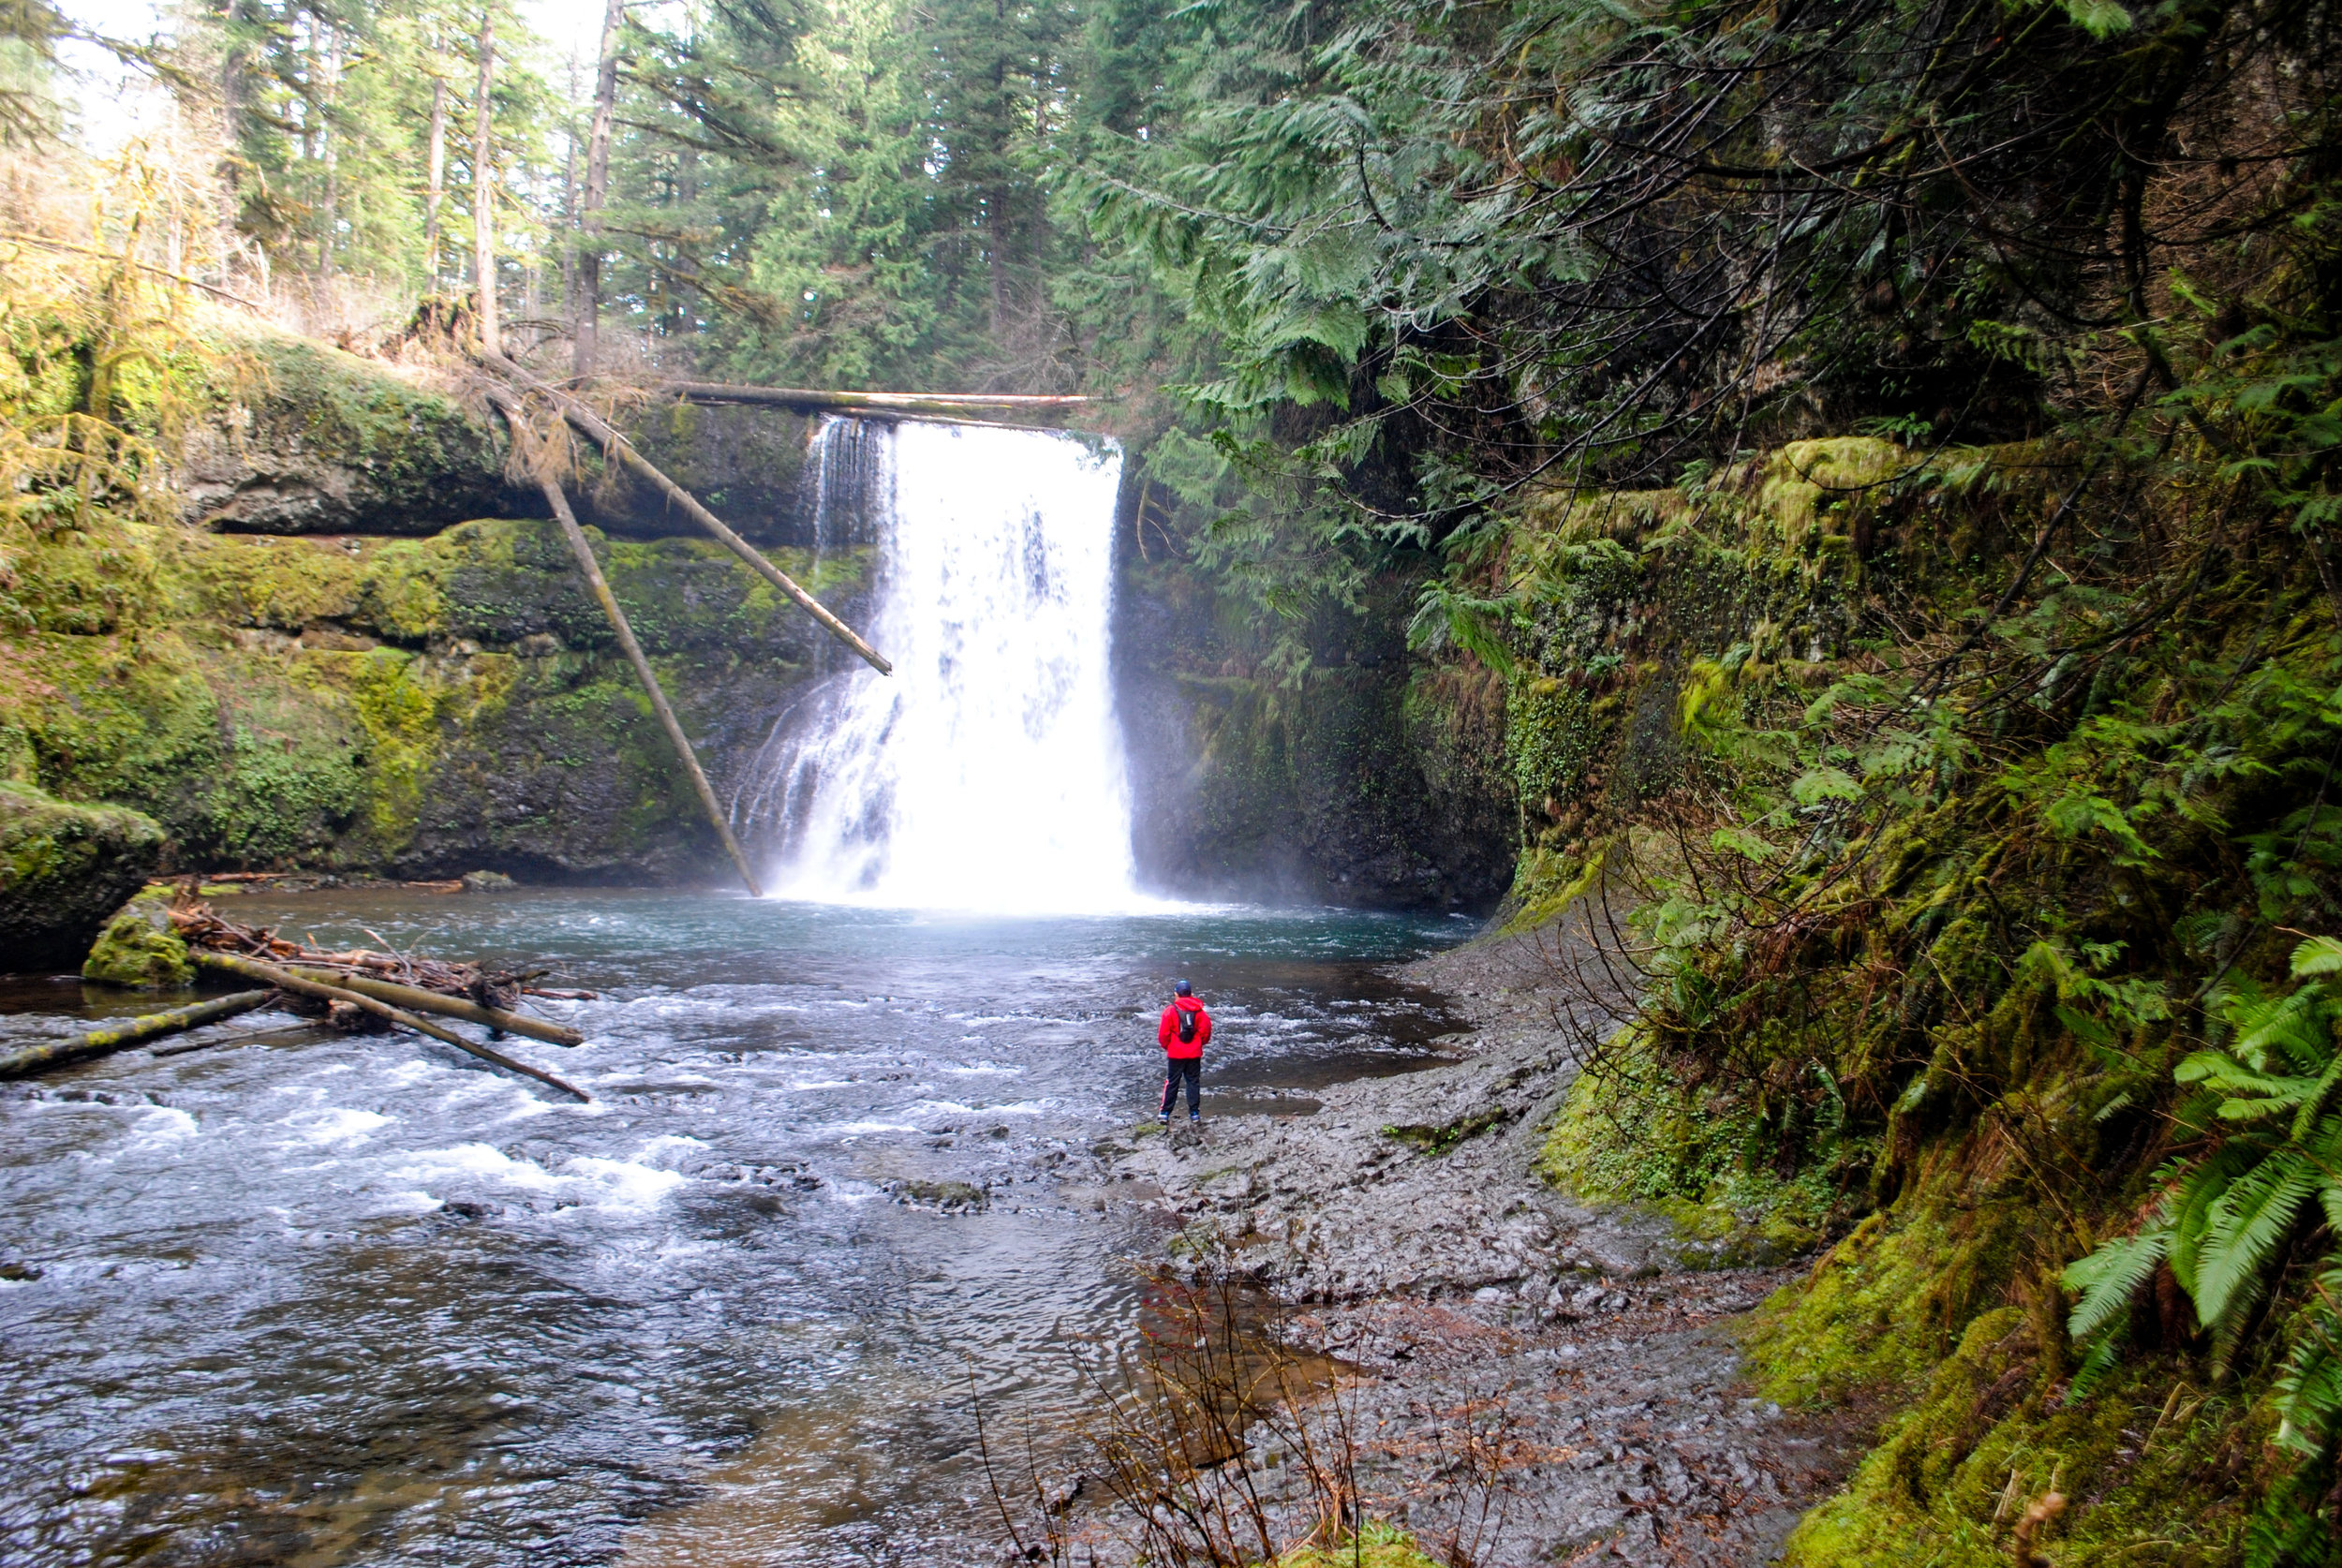 SILVER FALLS STATE PARK OREGON - Silver Falls State Parks - Trail of Ten Falls has been on our family bucket list for years. We finally were able to make it there and it wowed us beyond our expectations. To begin with…